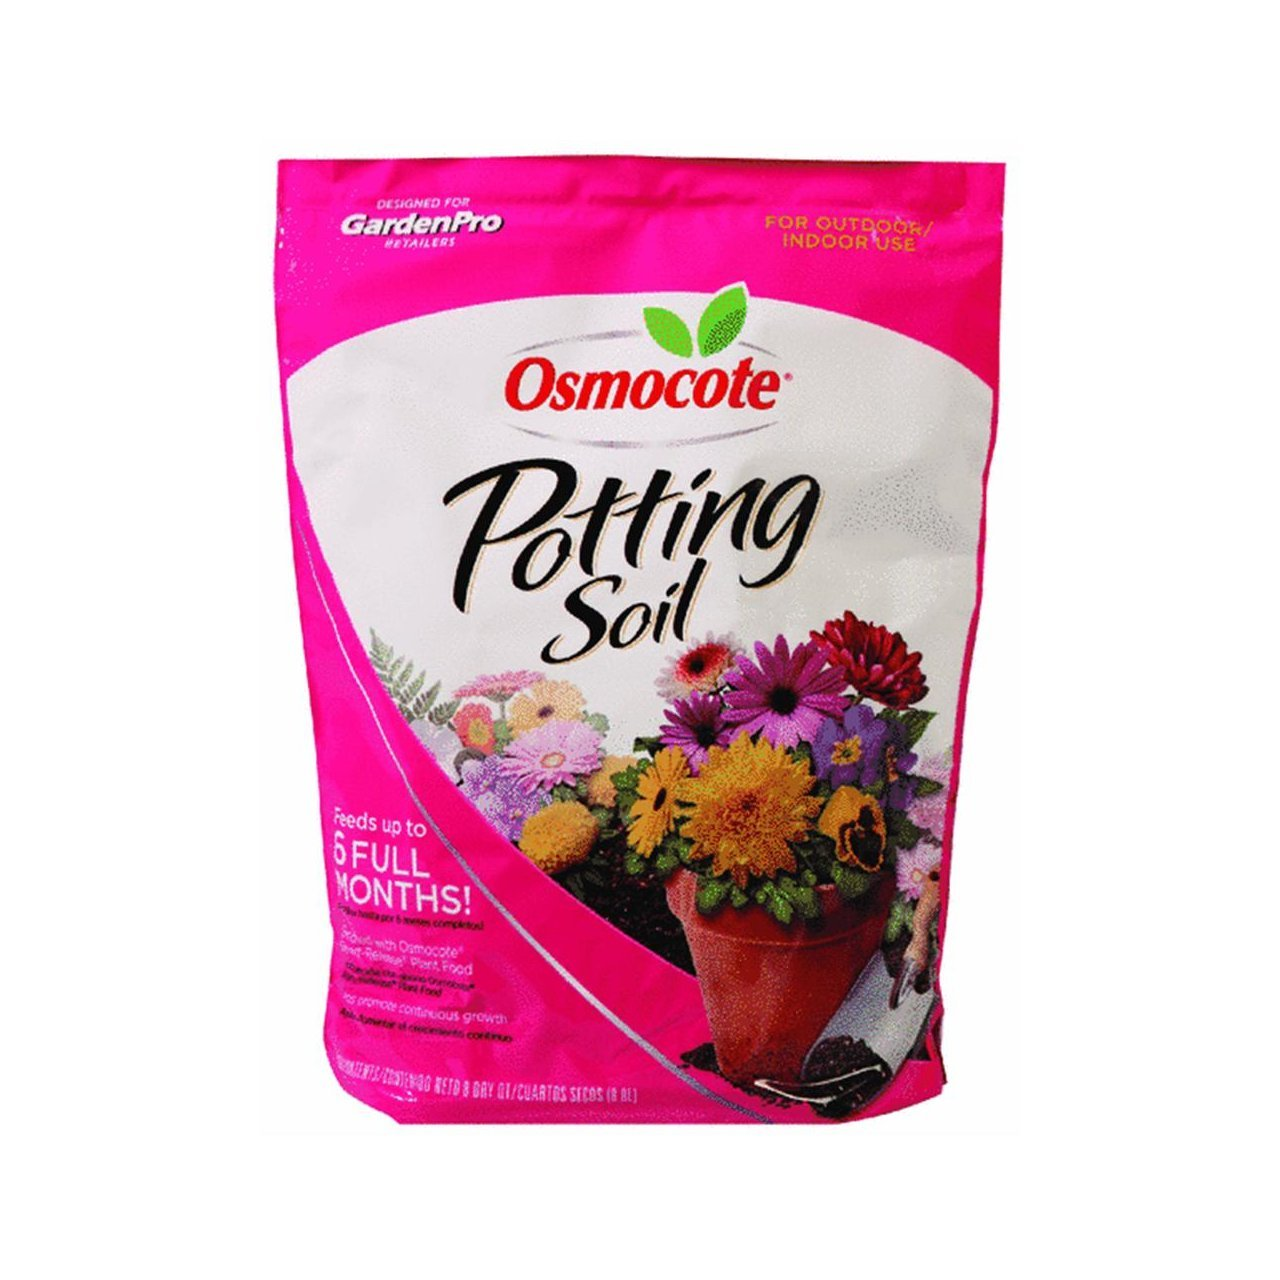 Company GP72778949 Osmocote Potting Soil, 8-Quart, Osmocote potting soil is a specially blended formula which provides container plants with the rich soil conditions By Scotts